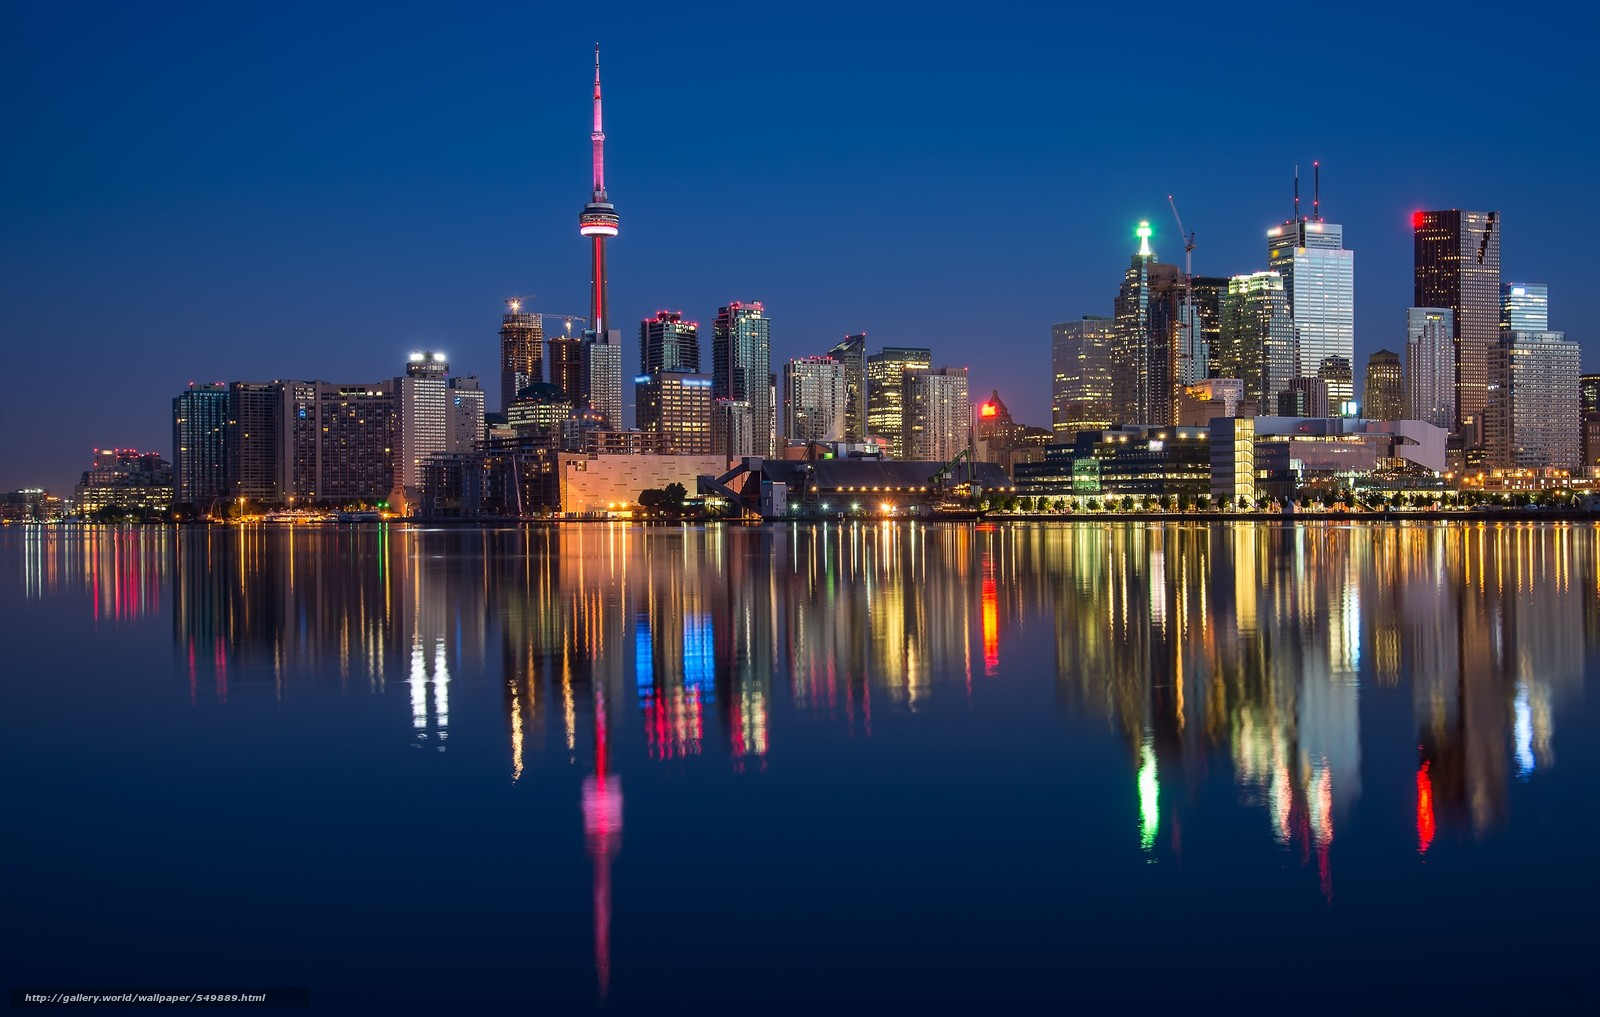 fly from stansted airport to toronto on primera air